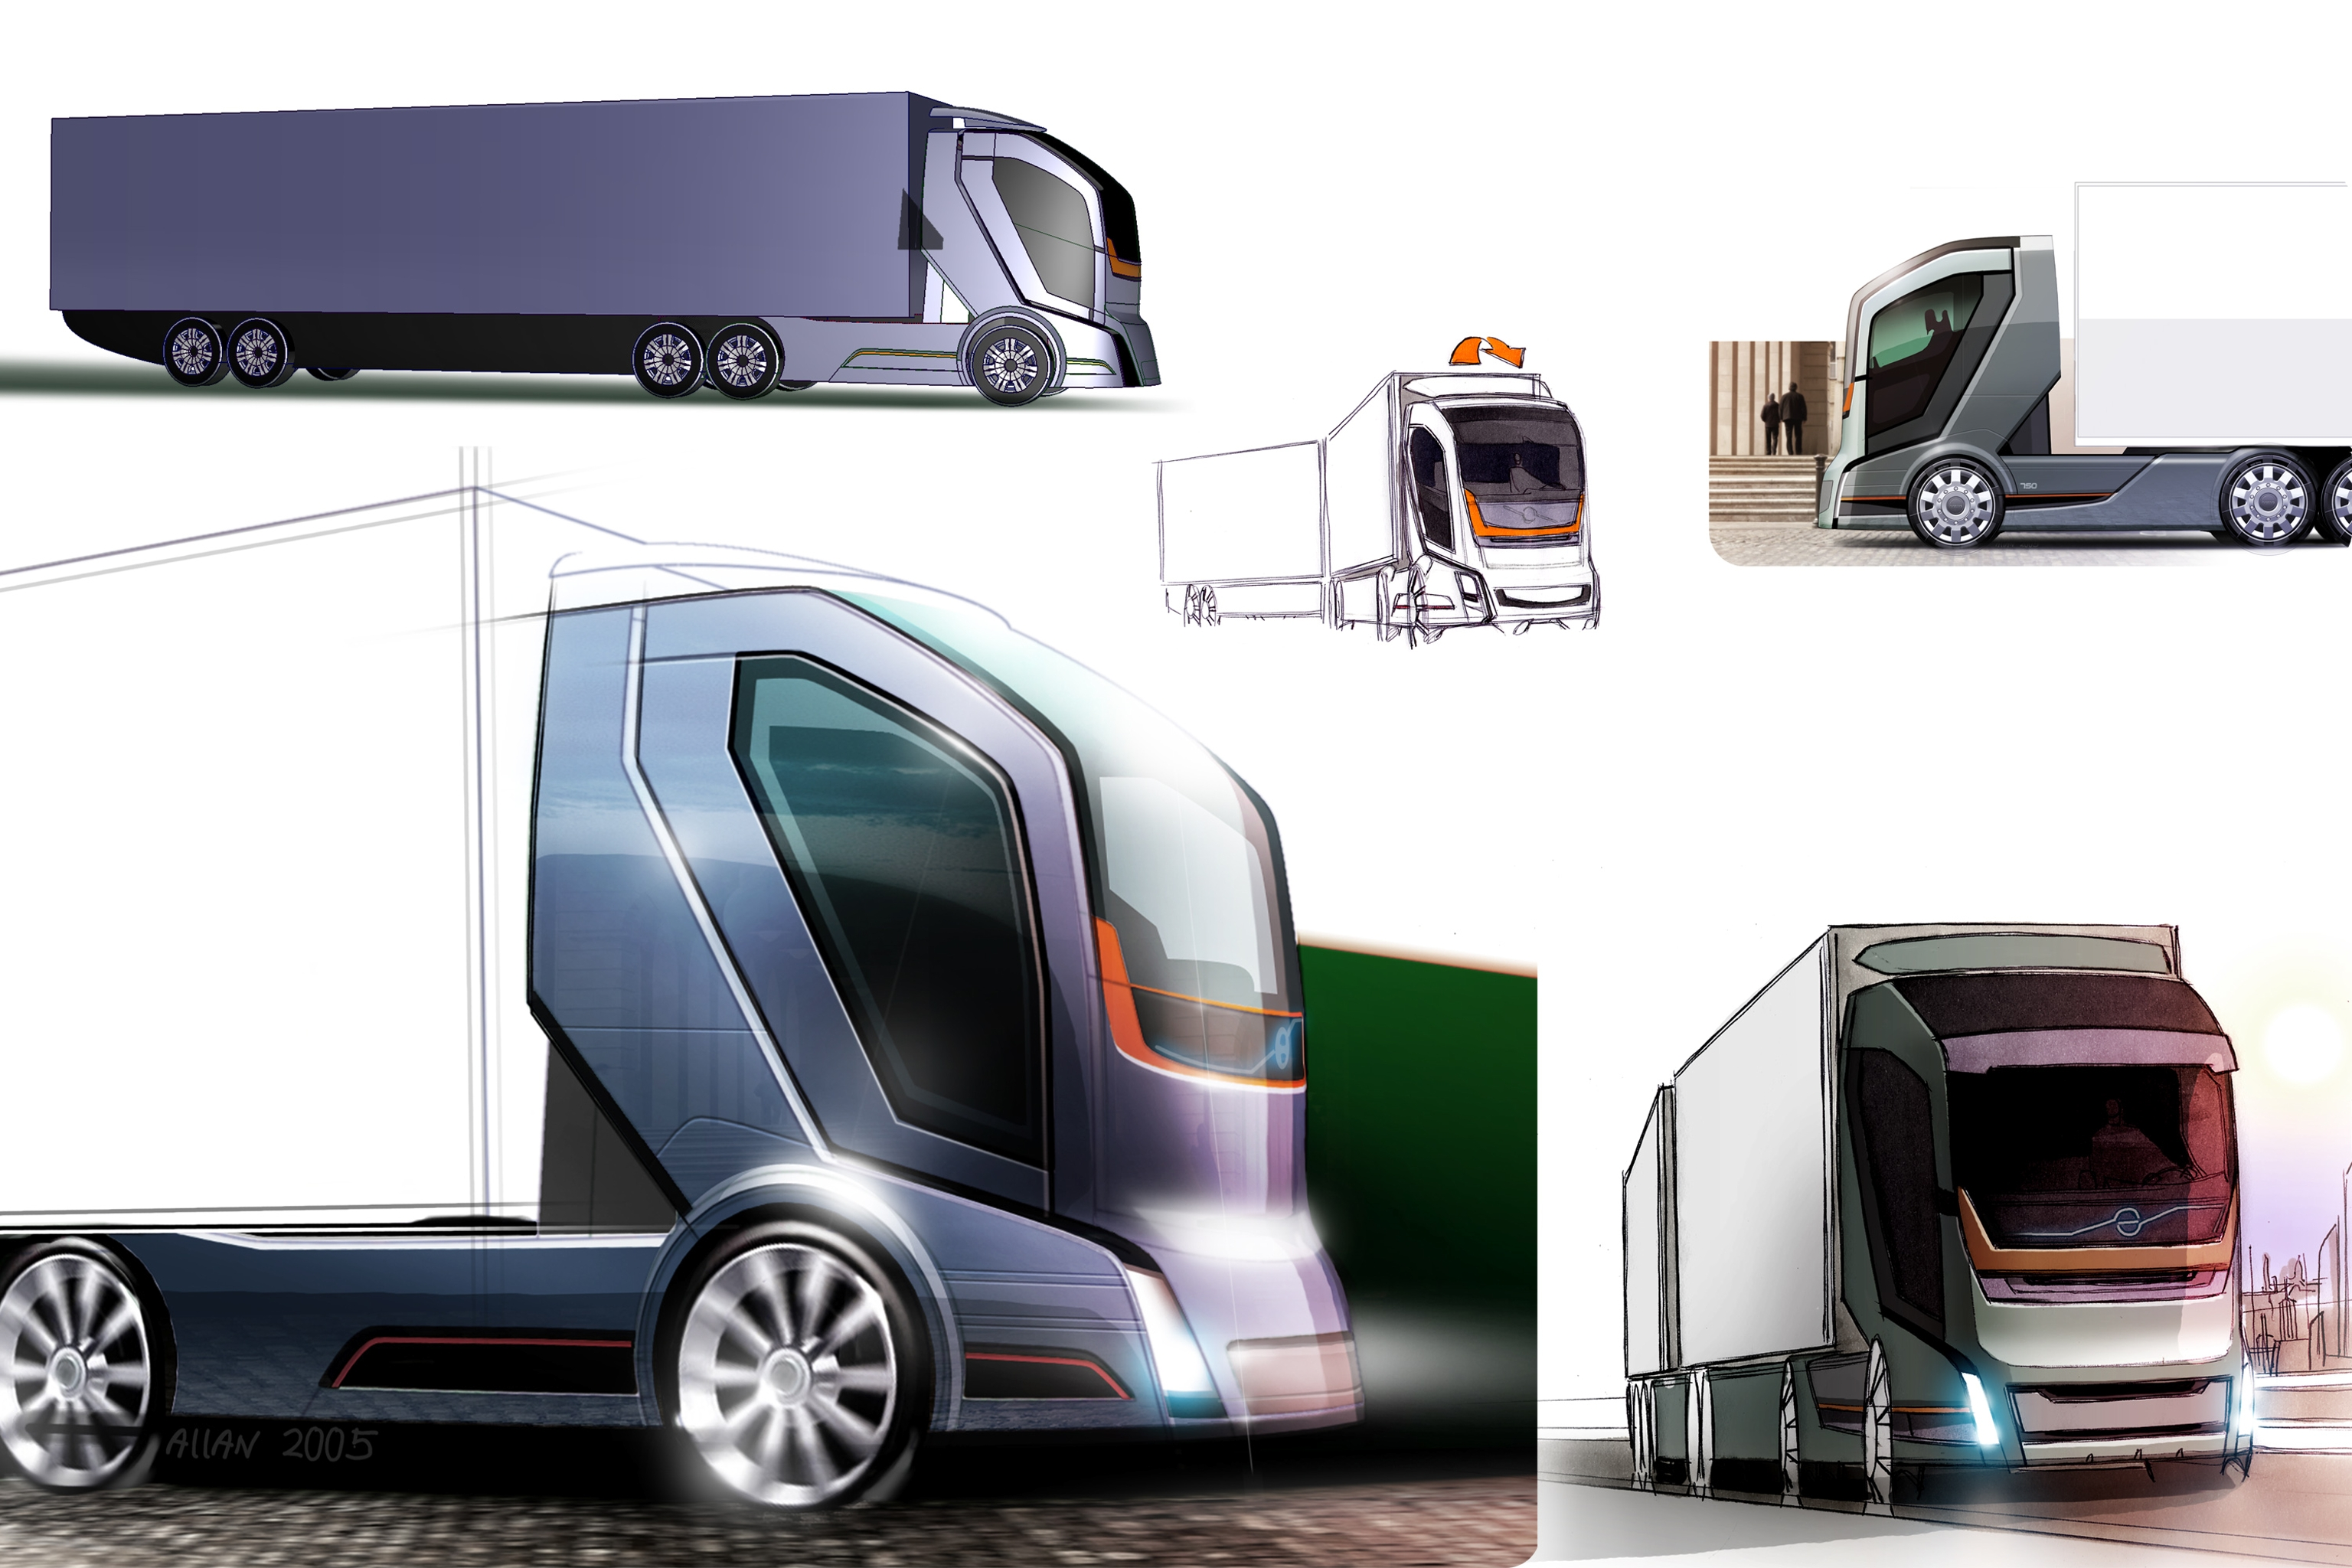 Pictures Of Future Trucks: Safer And More Efficient